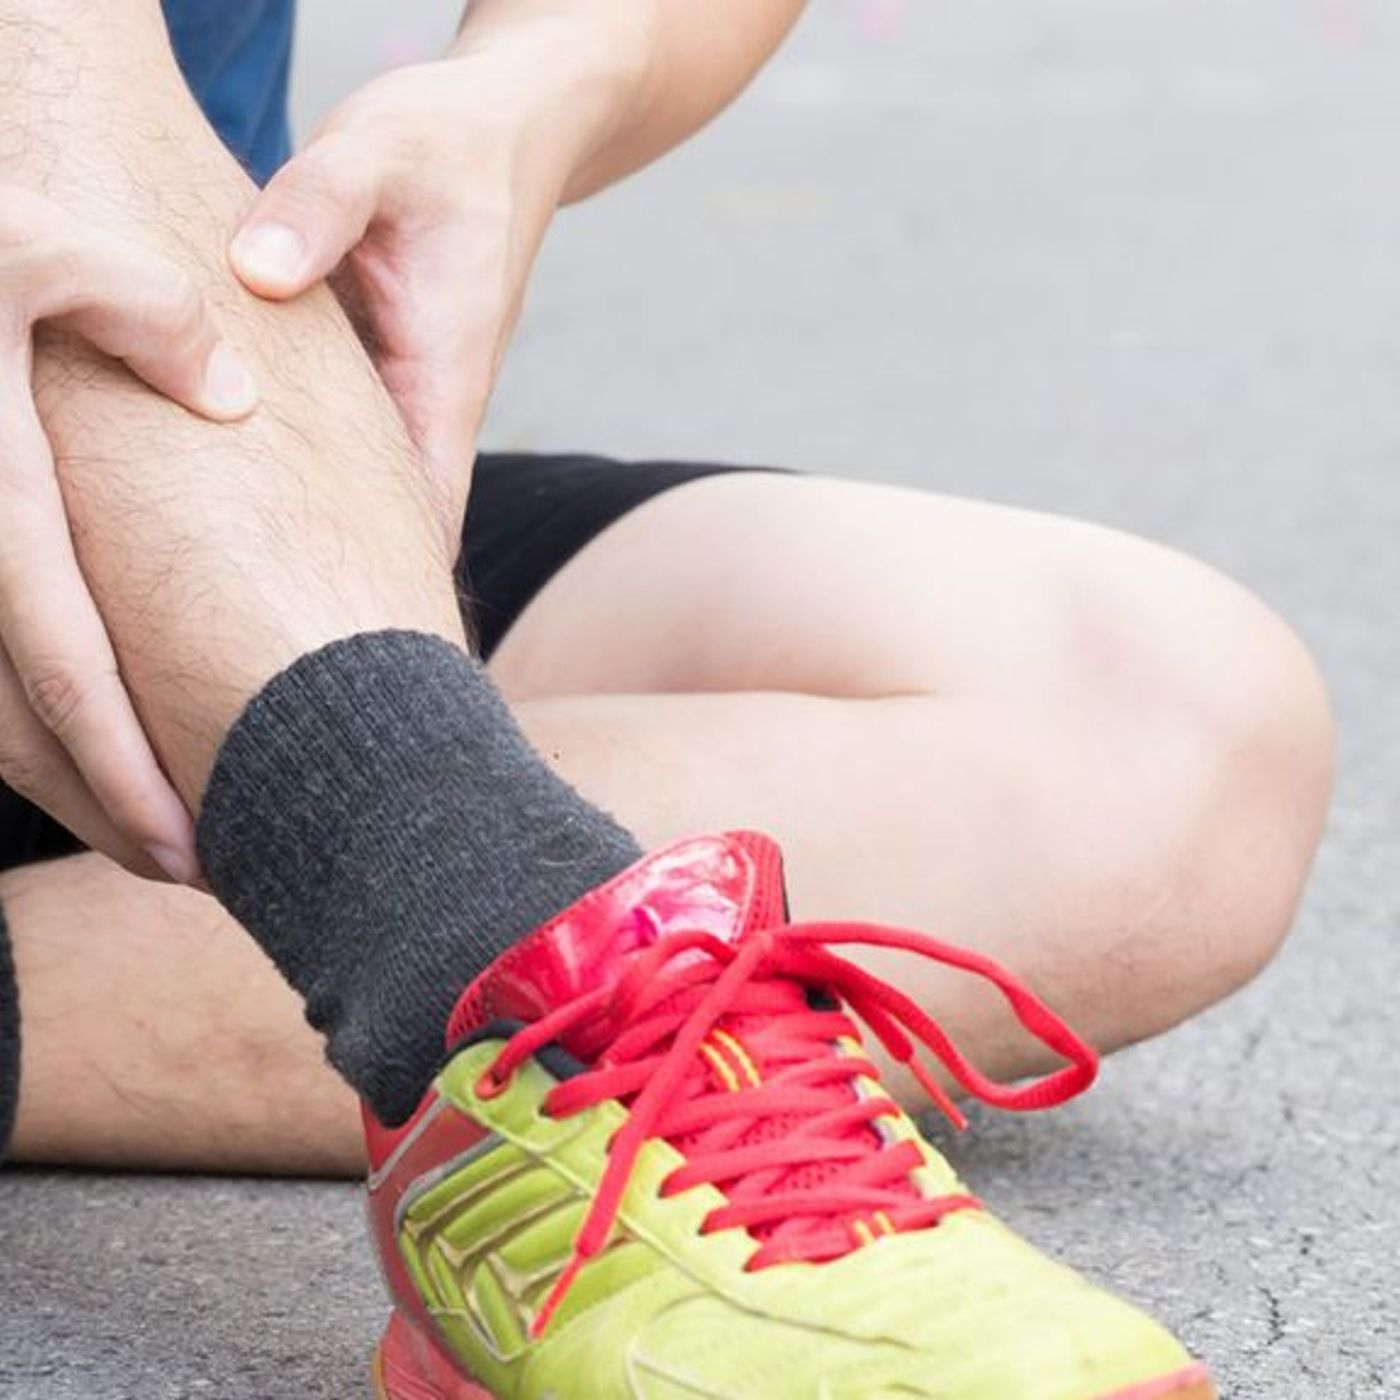 Ep. 3: Ask the Doctor about Shoulder Injuries and Bone Bruises in Young Athletes